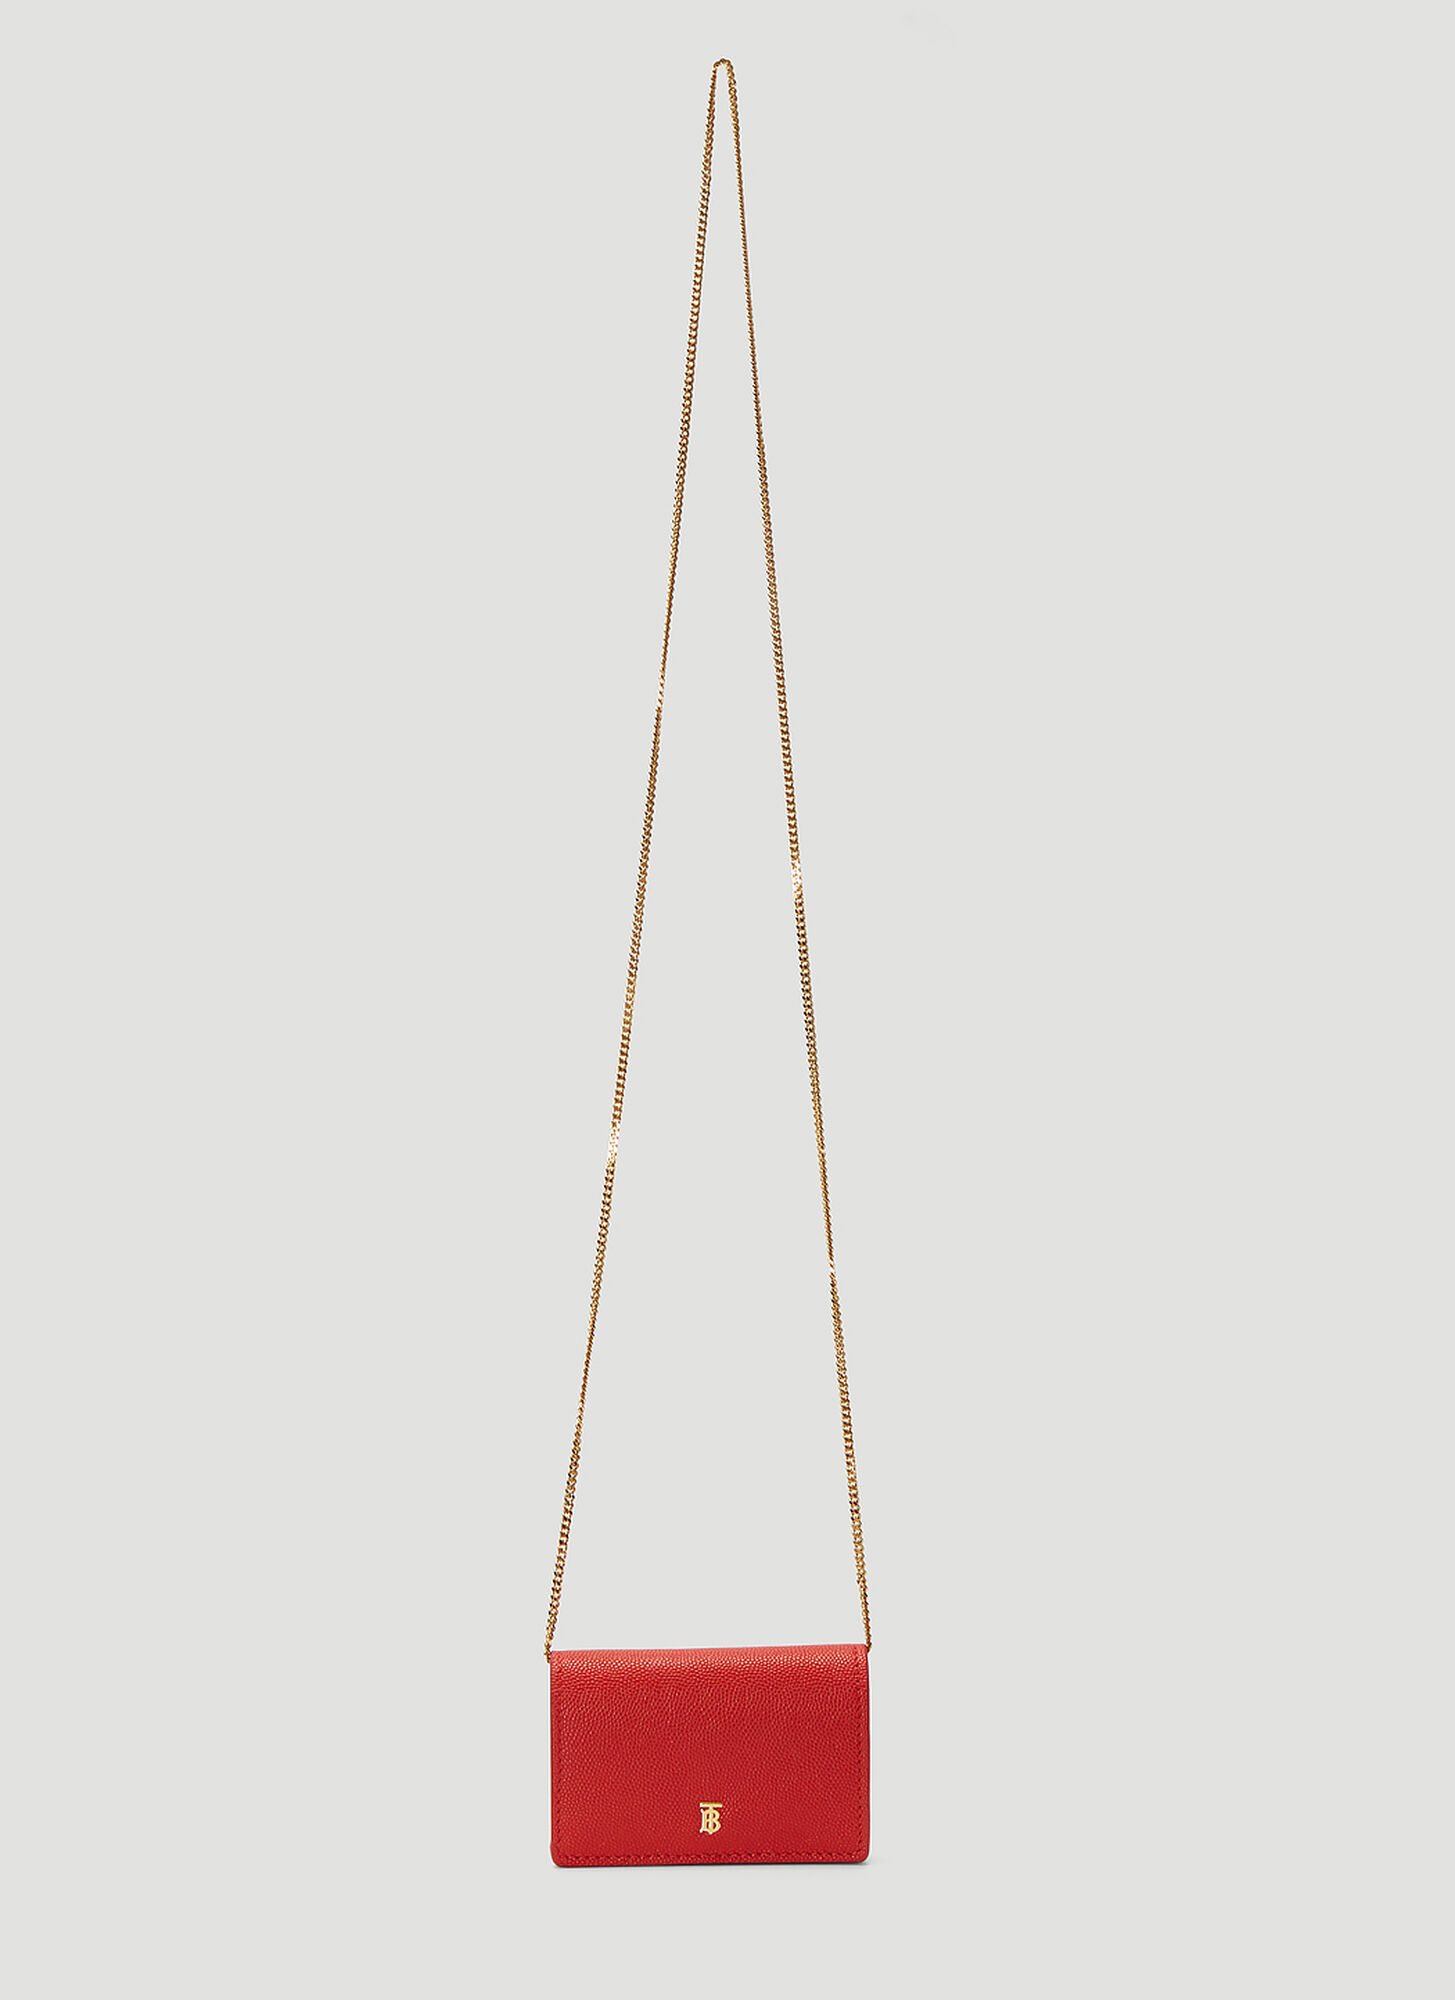 Burberry Jessie Mini Bag in Red